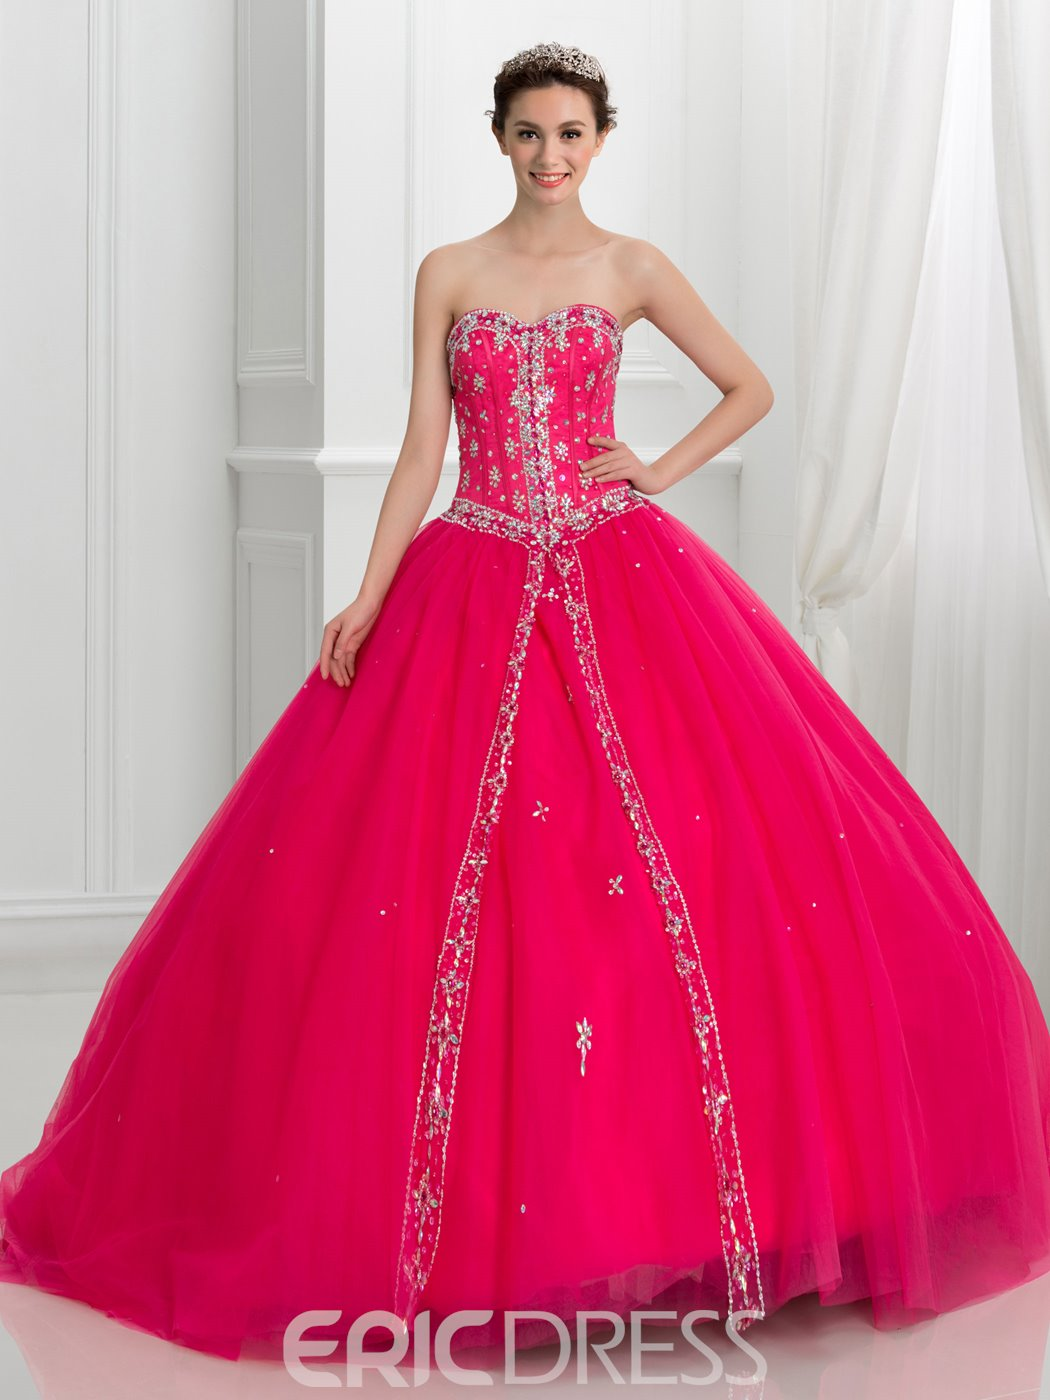 Ericdress Dramatic Sweetheart Beading Lace-Up Quinceanera Dress